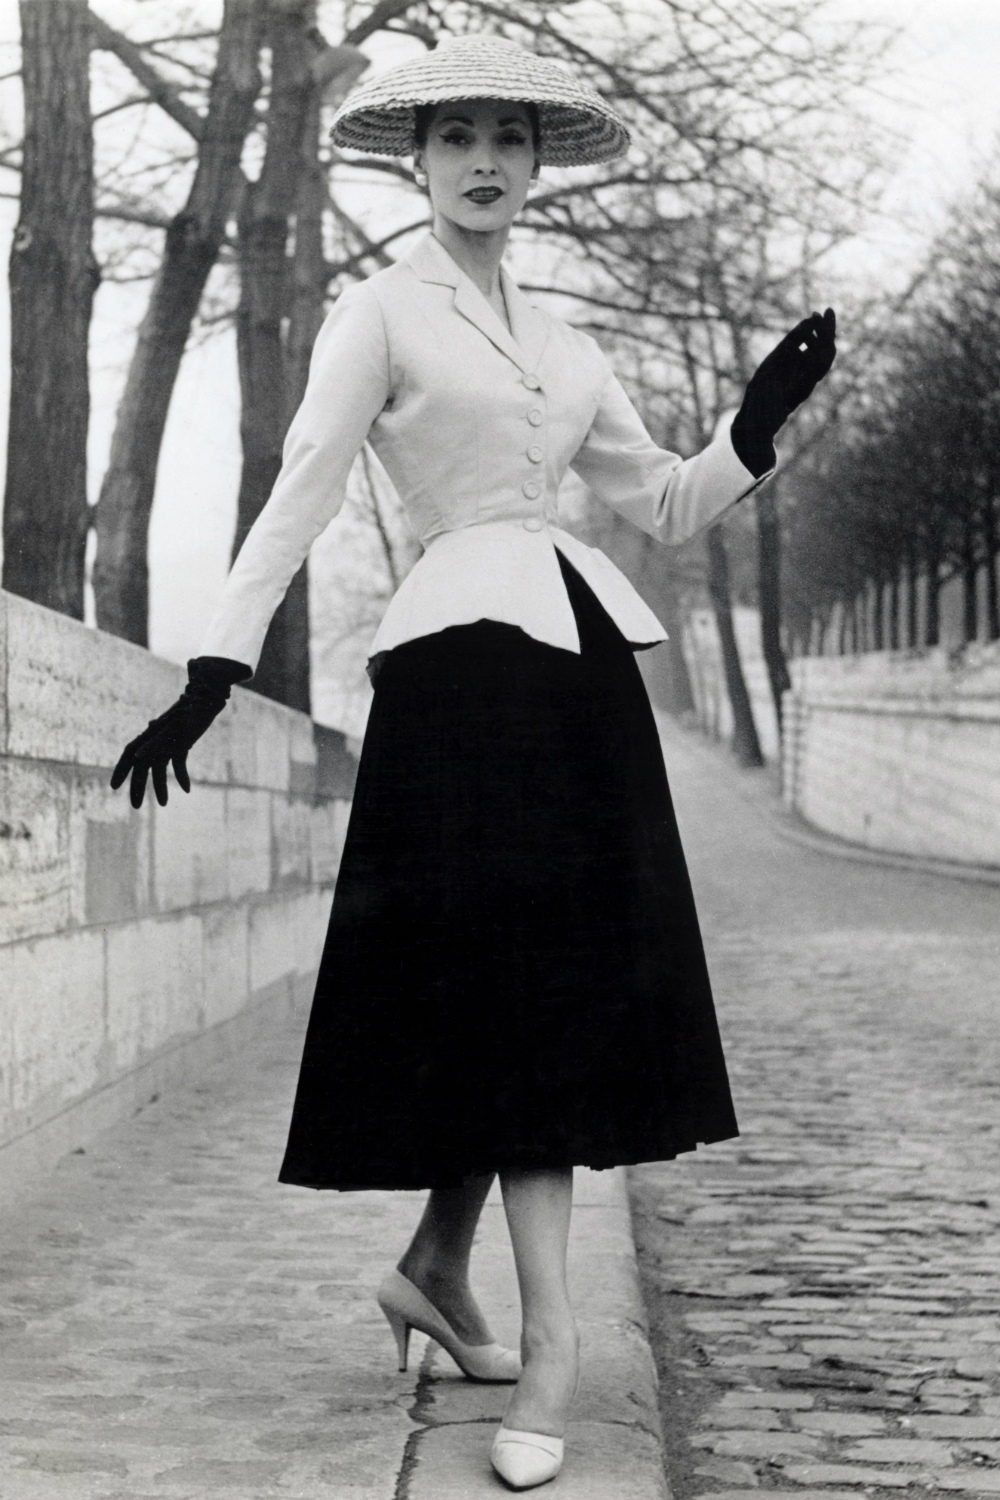 Christion Dior 1950s fashion moments